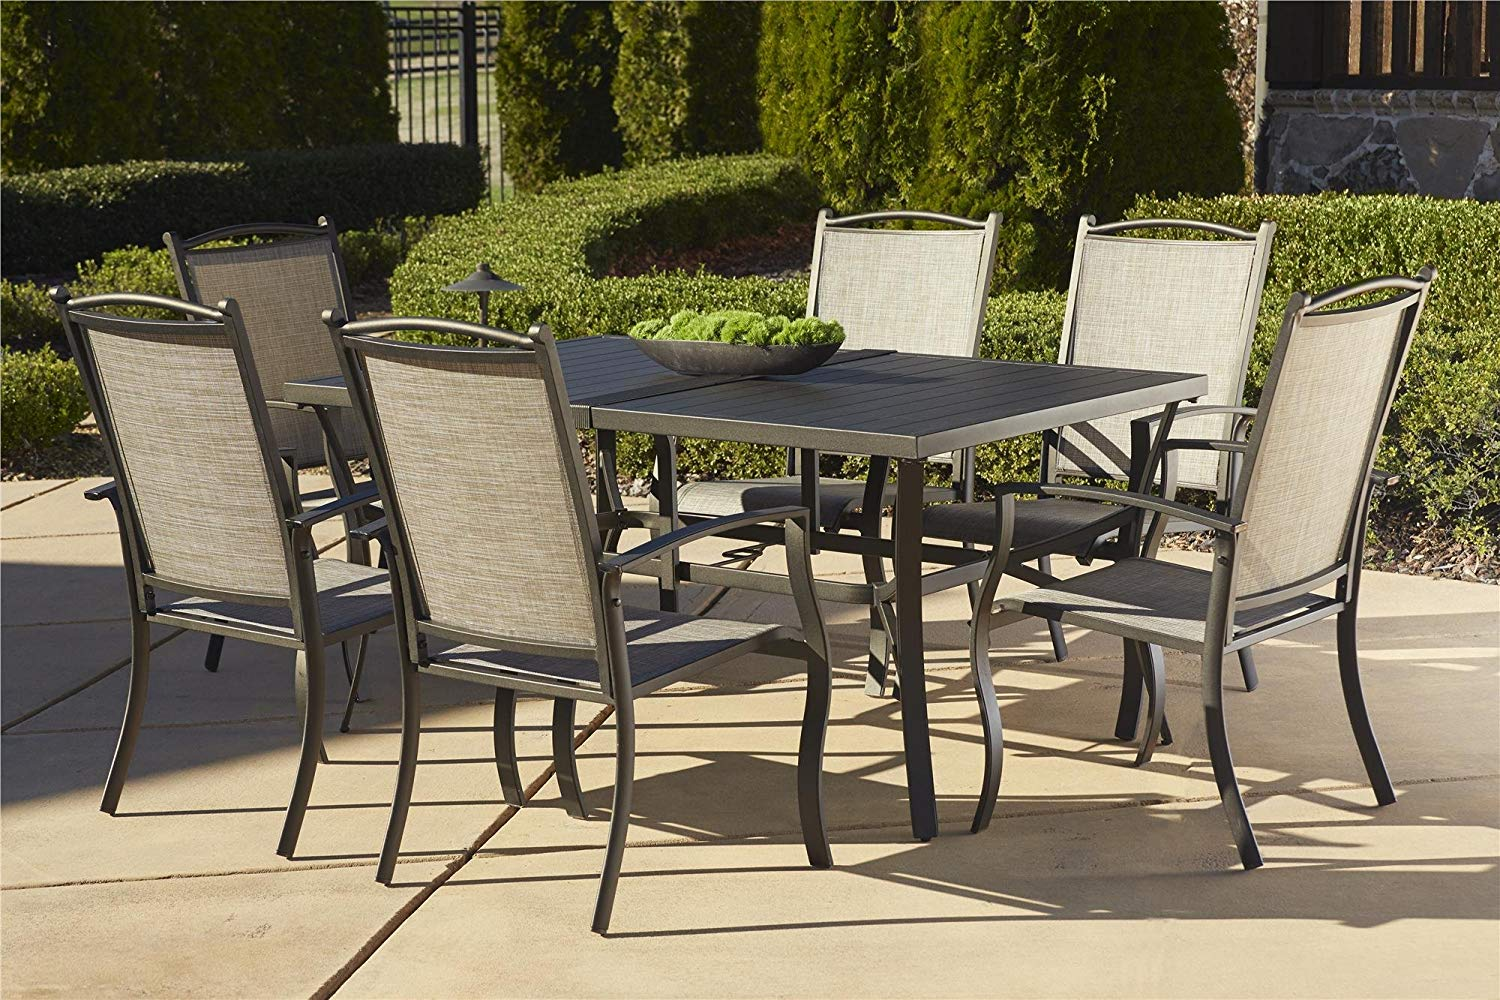 outdoor dining sets amazon.com: cosco outdoor 7 piece serene ridge aluminum patio dining set, RTGEVOJ